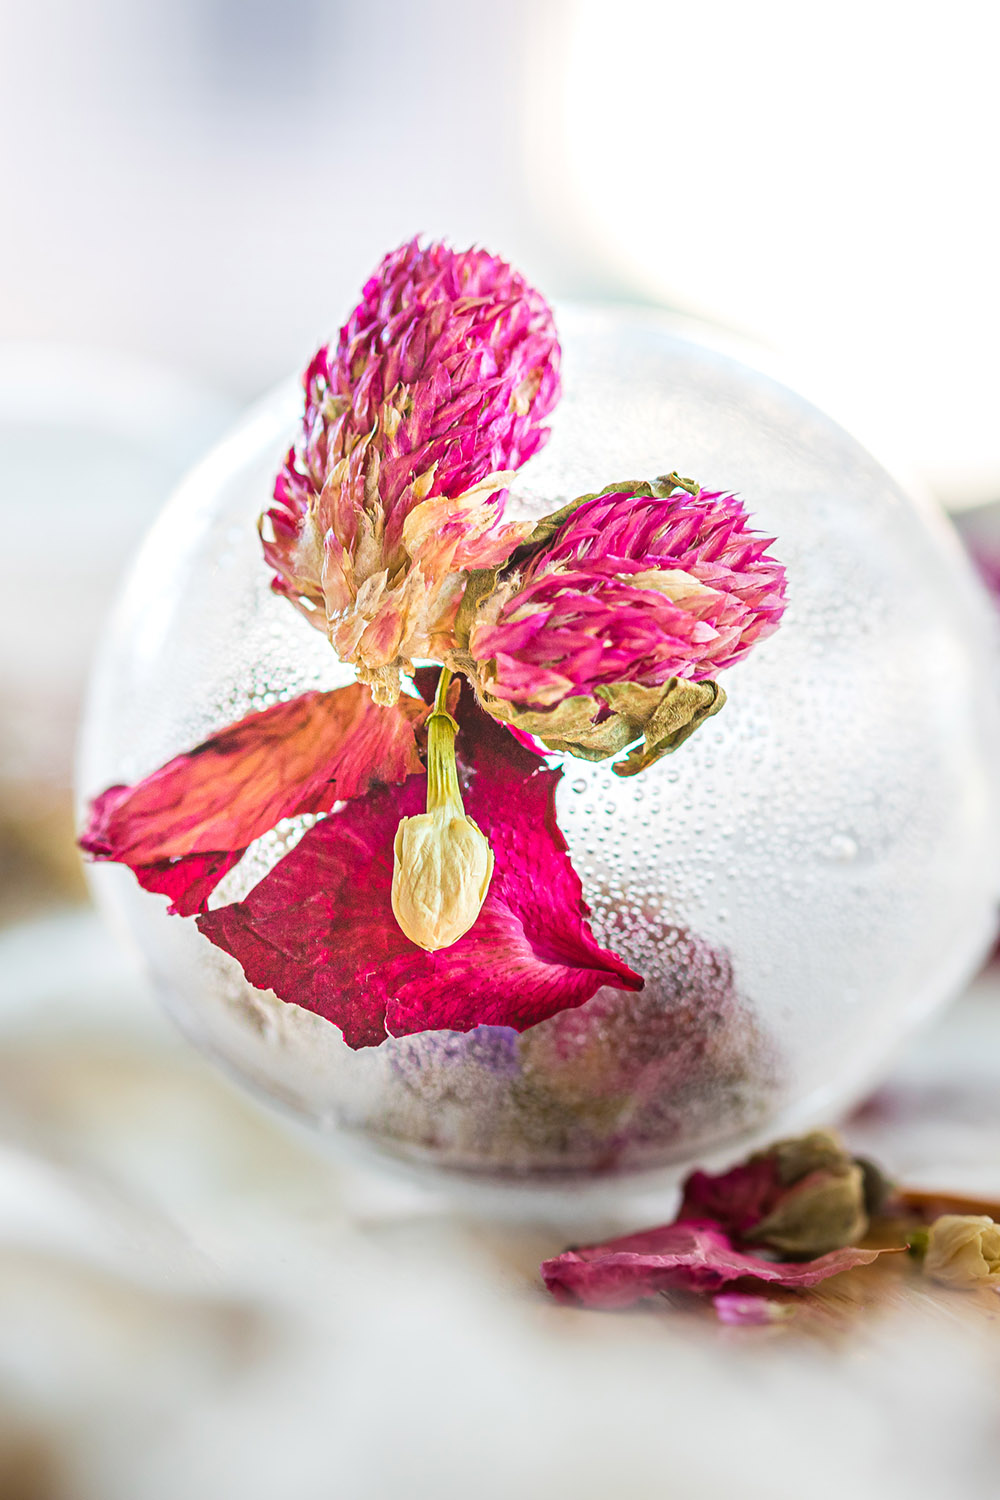 Clear tea globe with a pink flower.